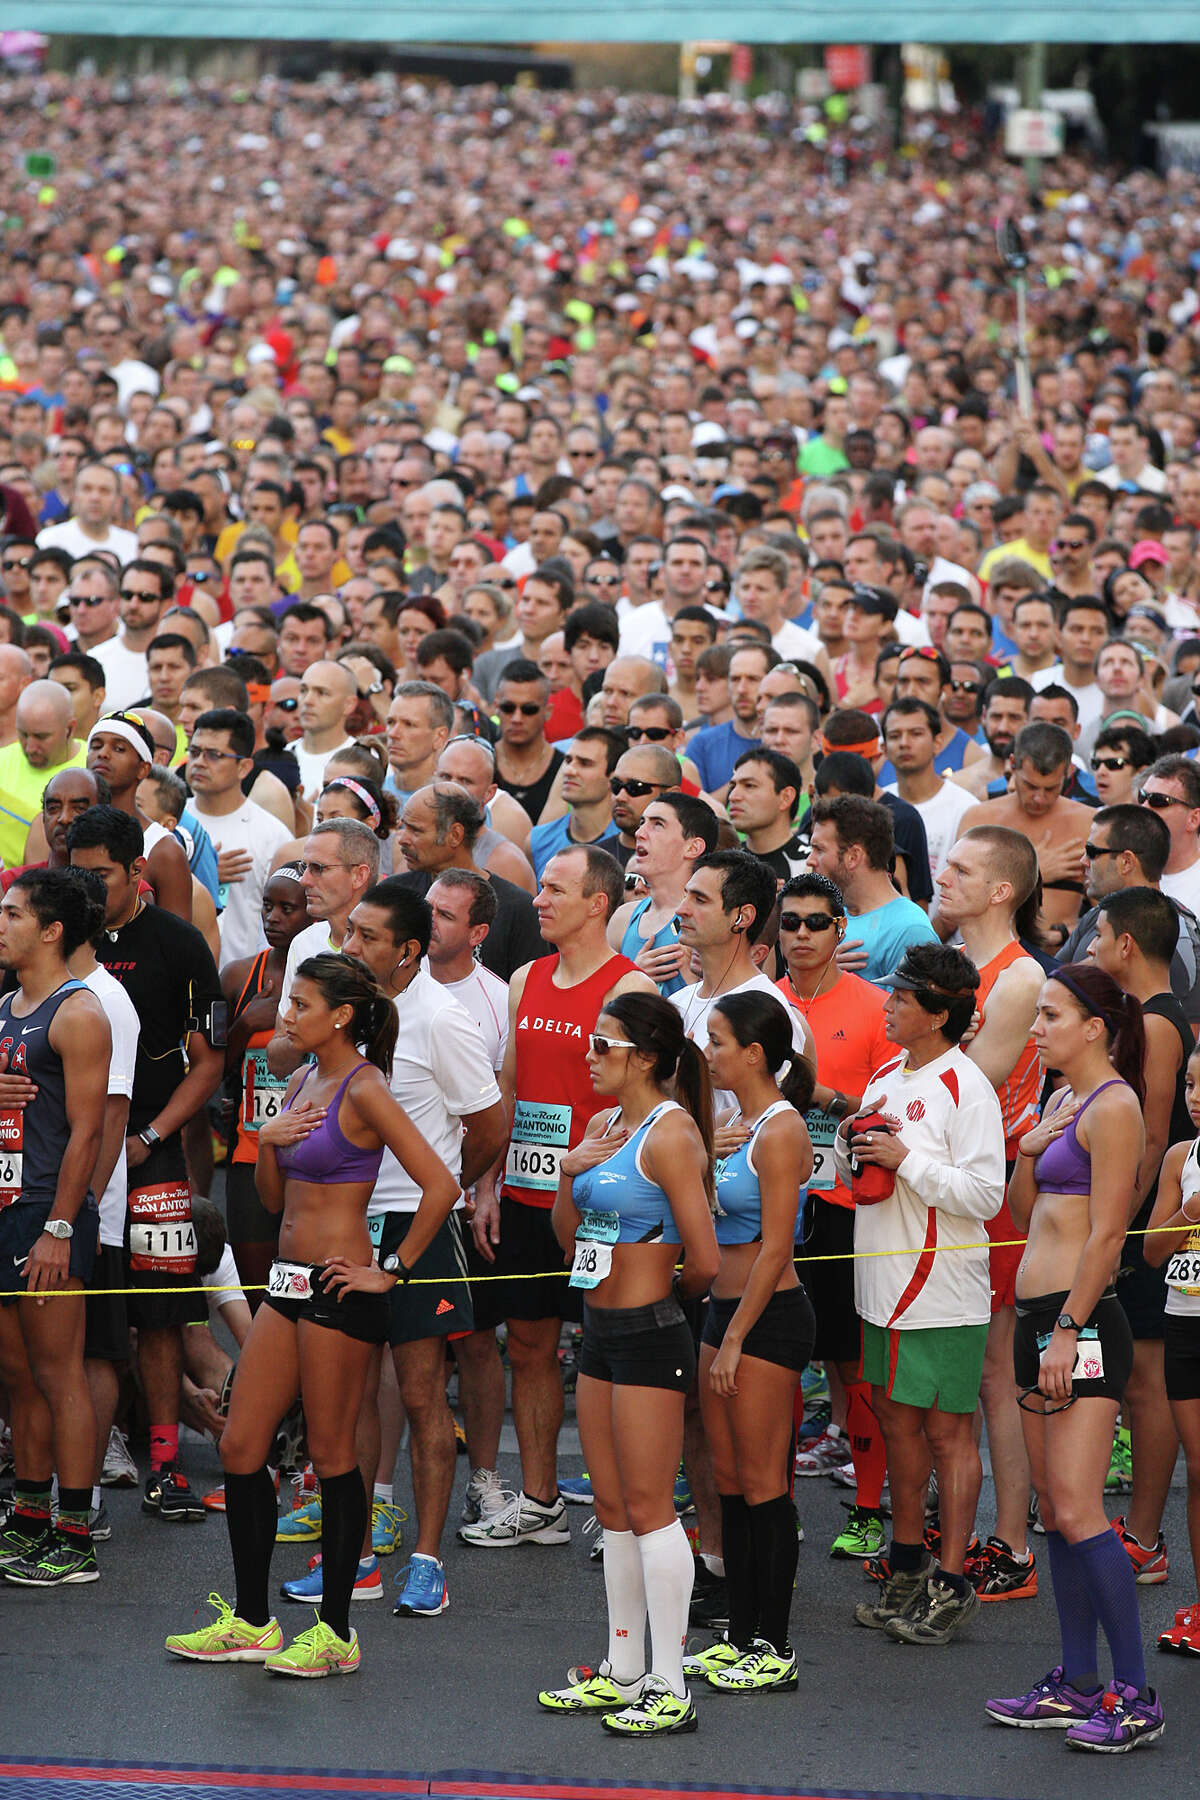 Around 25,000 runners are in place as the National Anthem is sung before the start of the Rock 'n' Roll San Antonio Marathon and 1/2 Marathon, Sunday, Nov. 11, 2012.